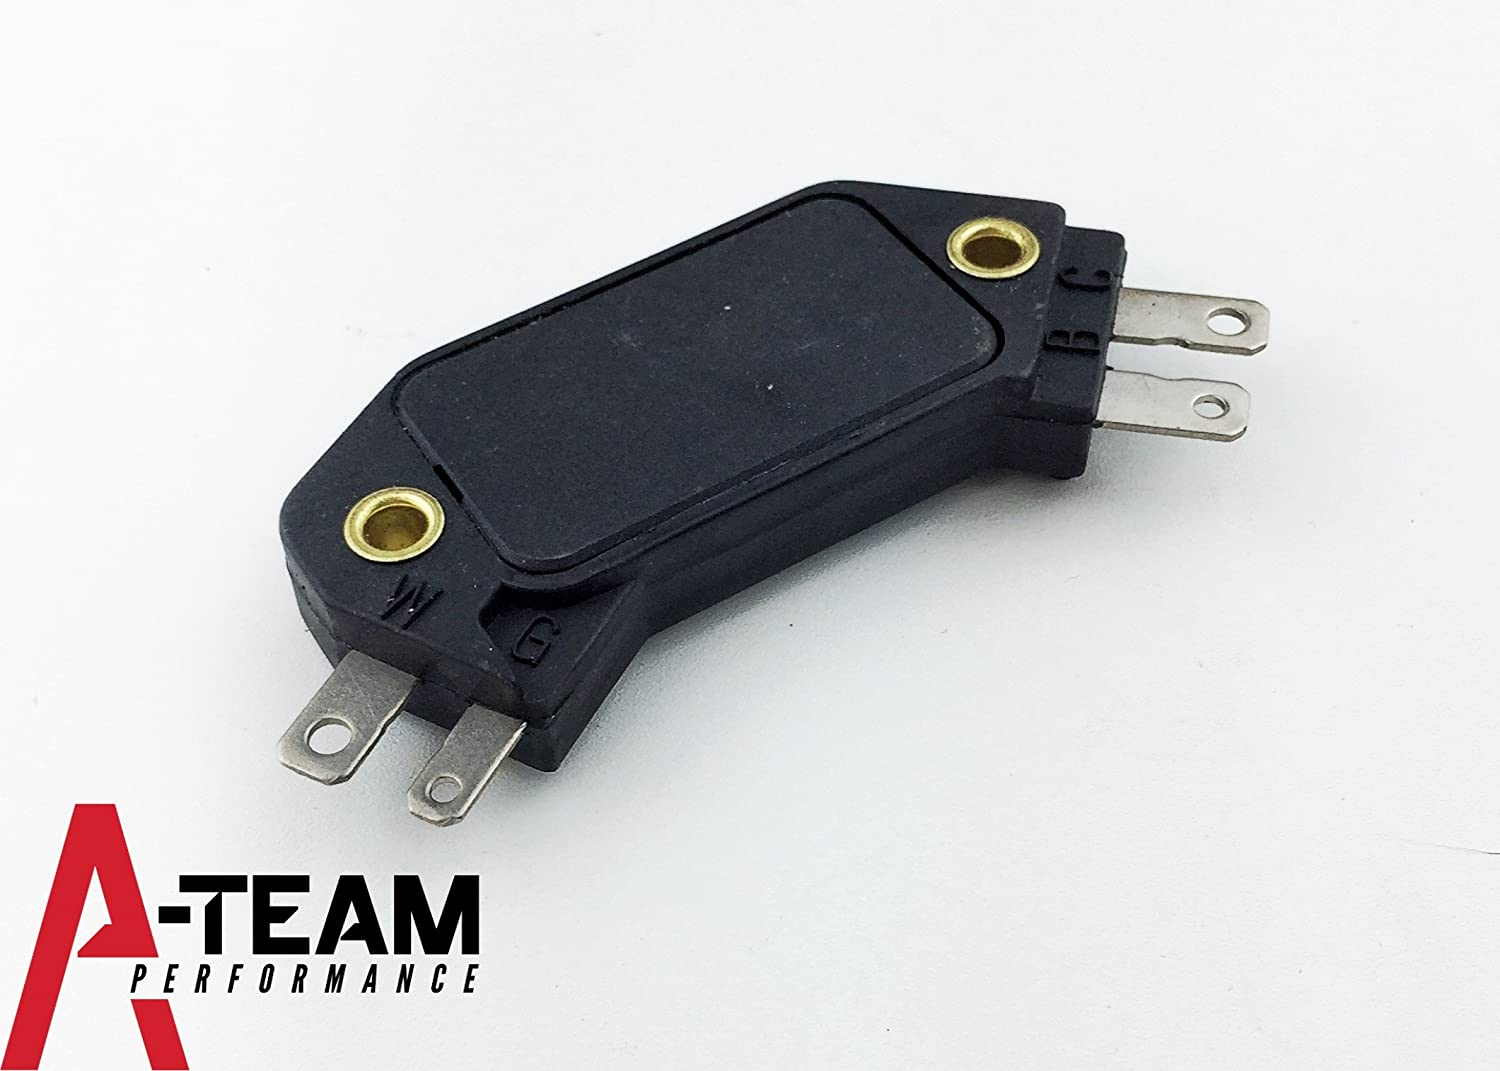 A Team Performance 4 Pin Ignition Module Replacement For Mopar Hei Wiring In Gm Distributors Compatible With Chevy Olds Pontiac D1906 Automotive